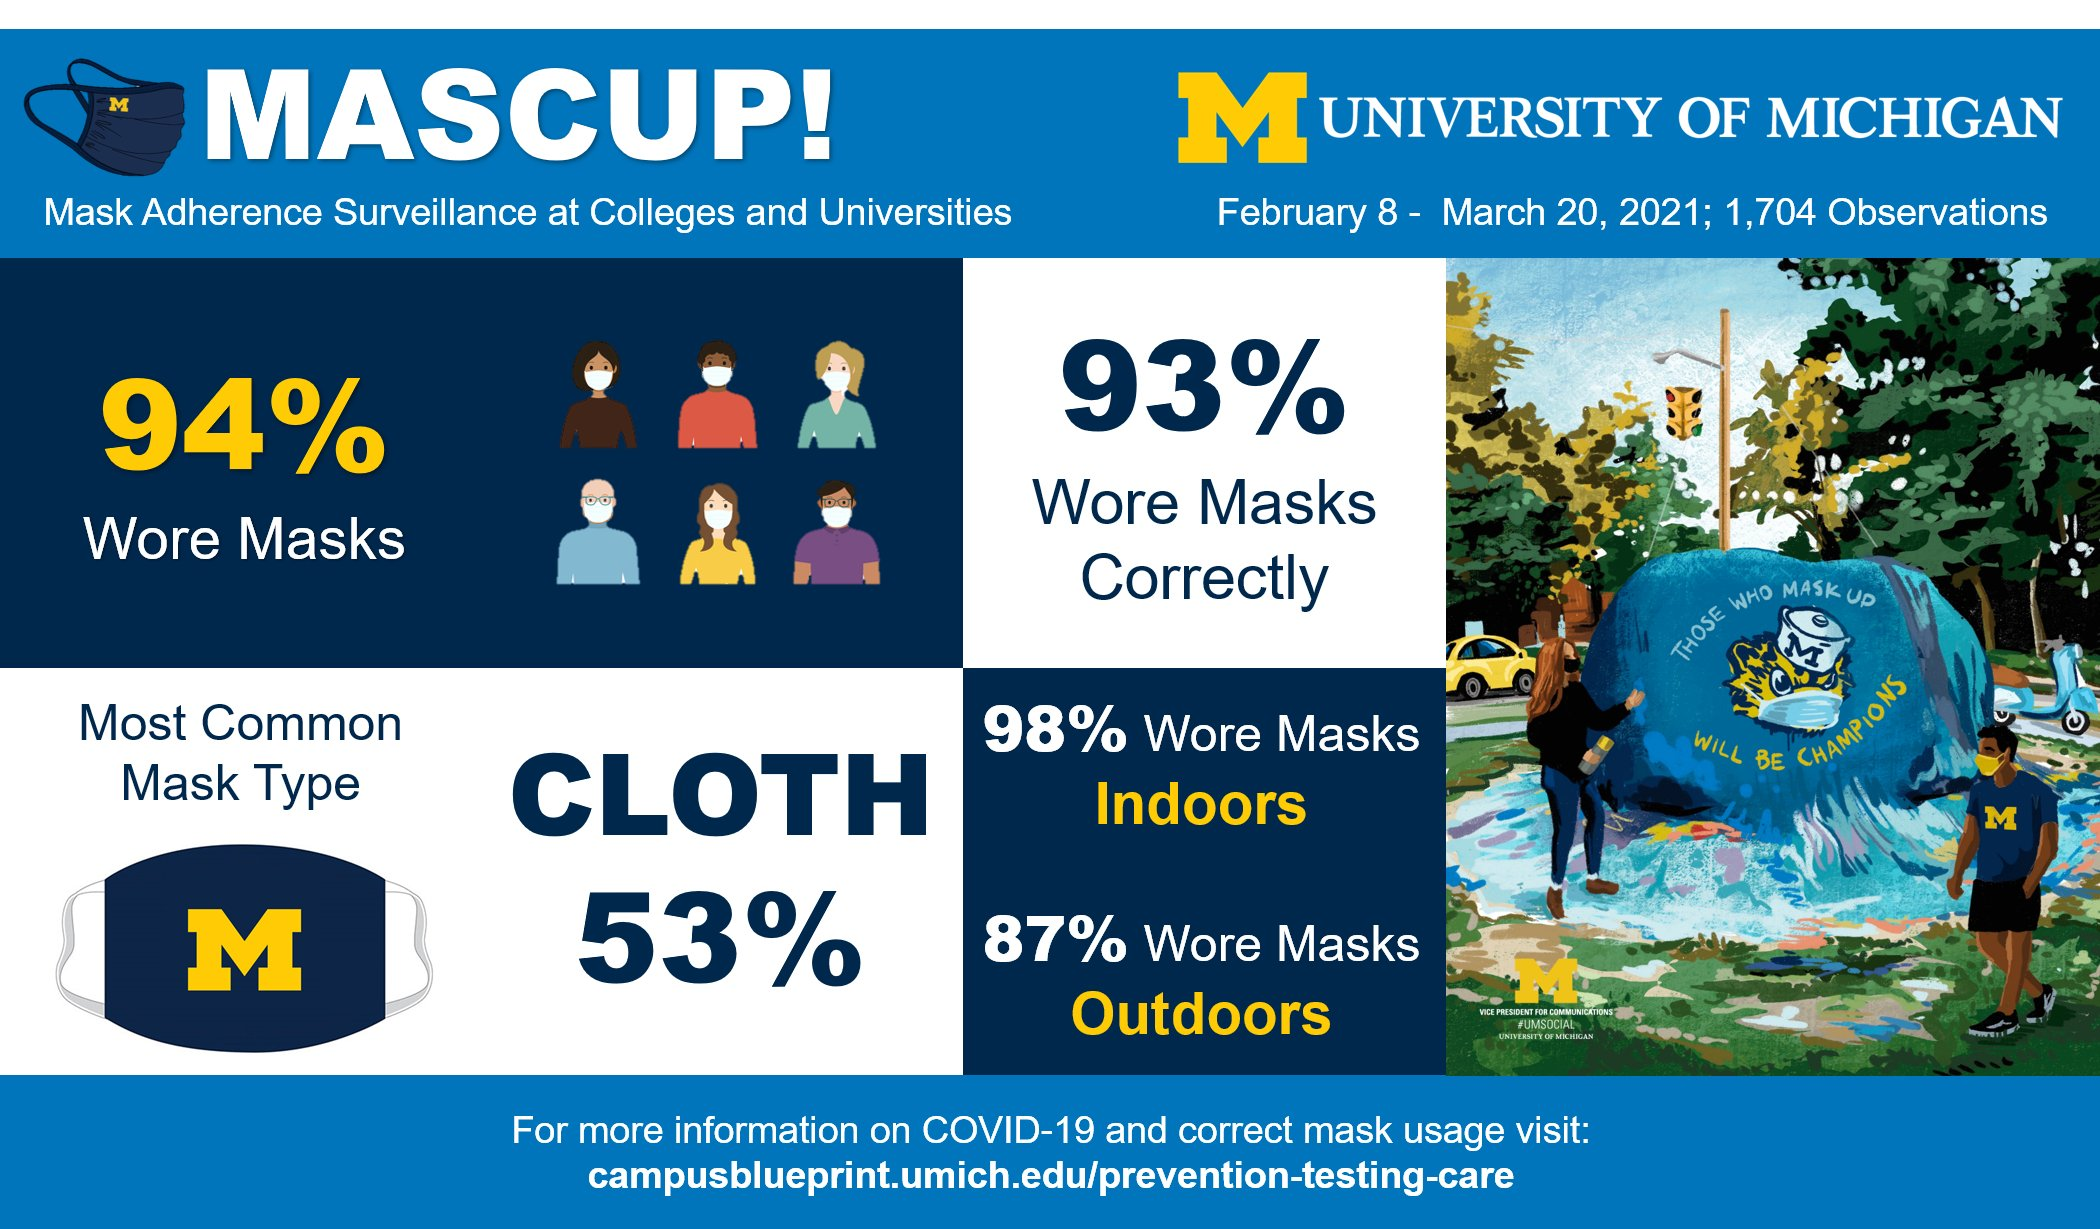 Mask Adherence Surveillance at Colleges and Universities Project (MASCUP!) from the @CDCgov. University of Michigan graphic, with study results of 1704 observations taken from 2/8-3/20/2021. 94% wore masks. Cloth masks were most common 53%. 93% wore masks